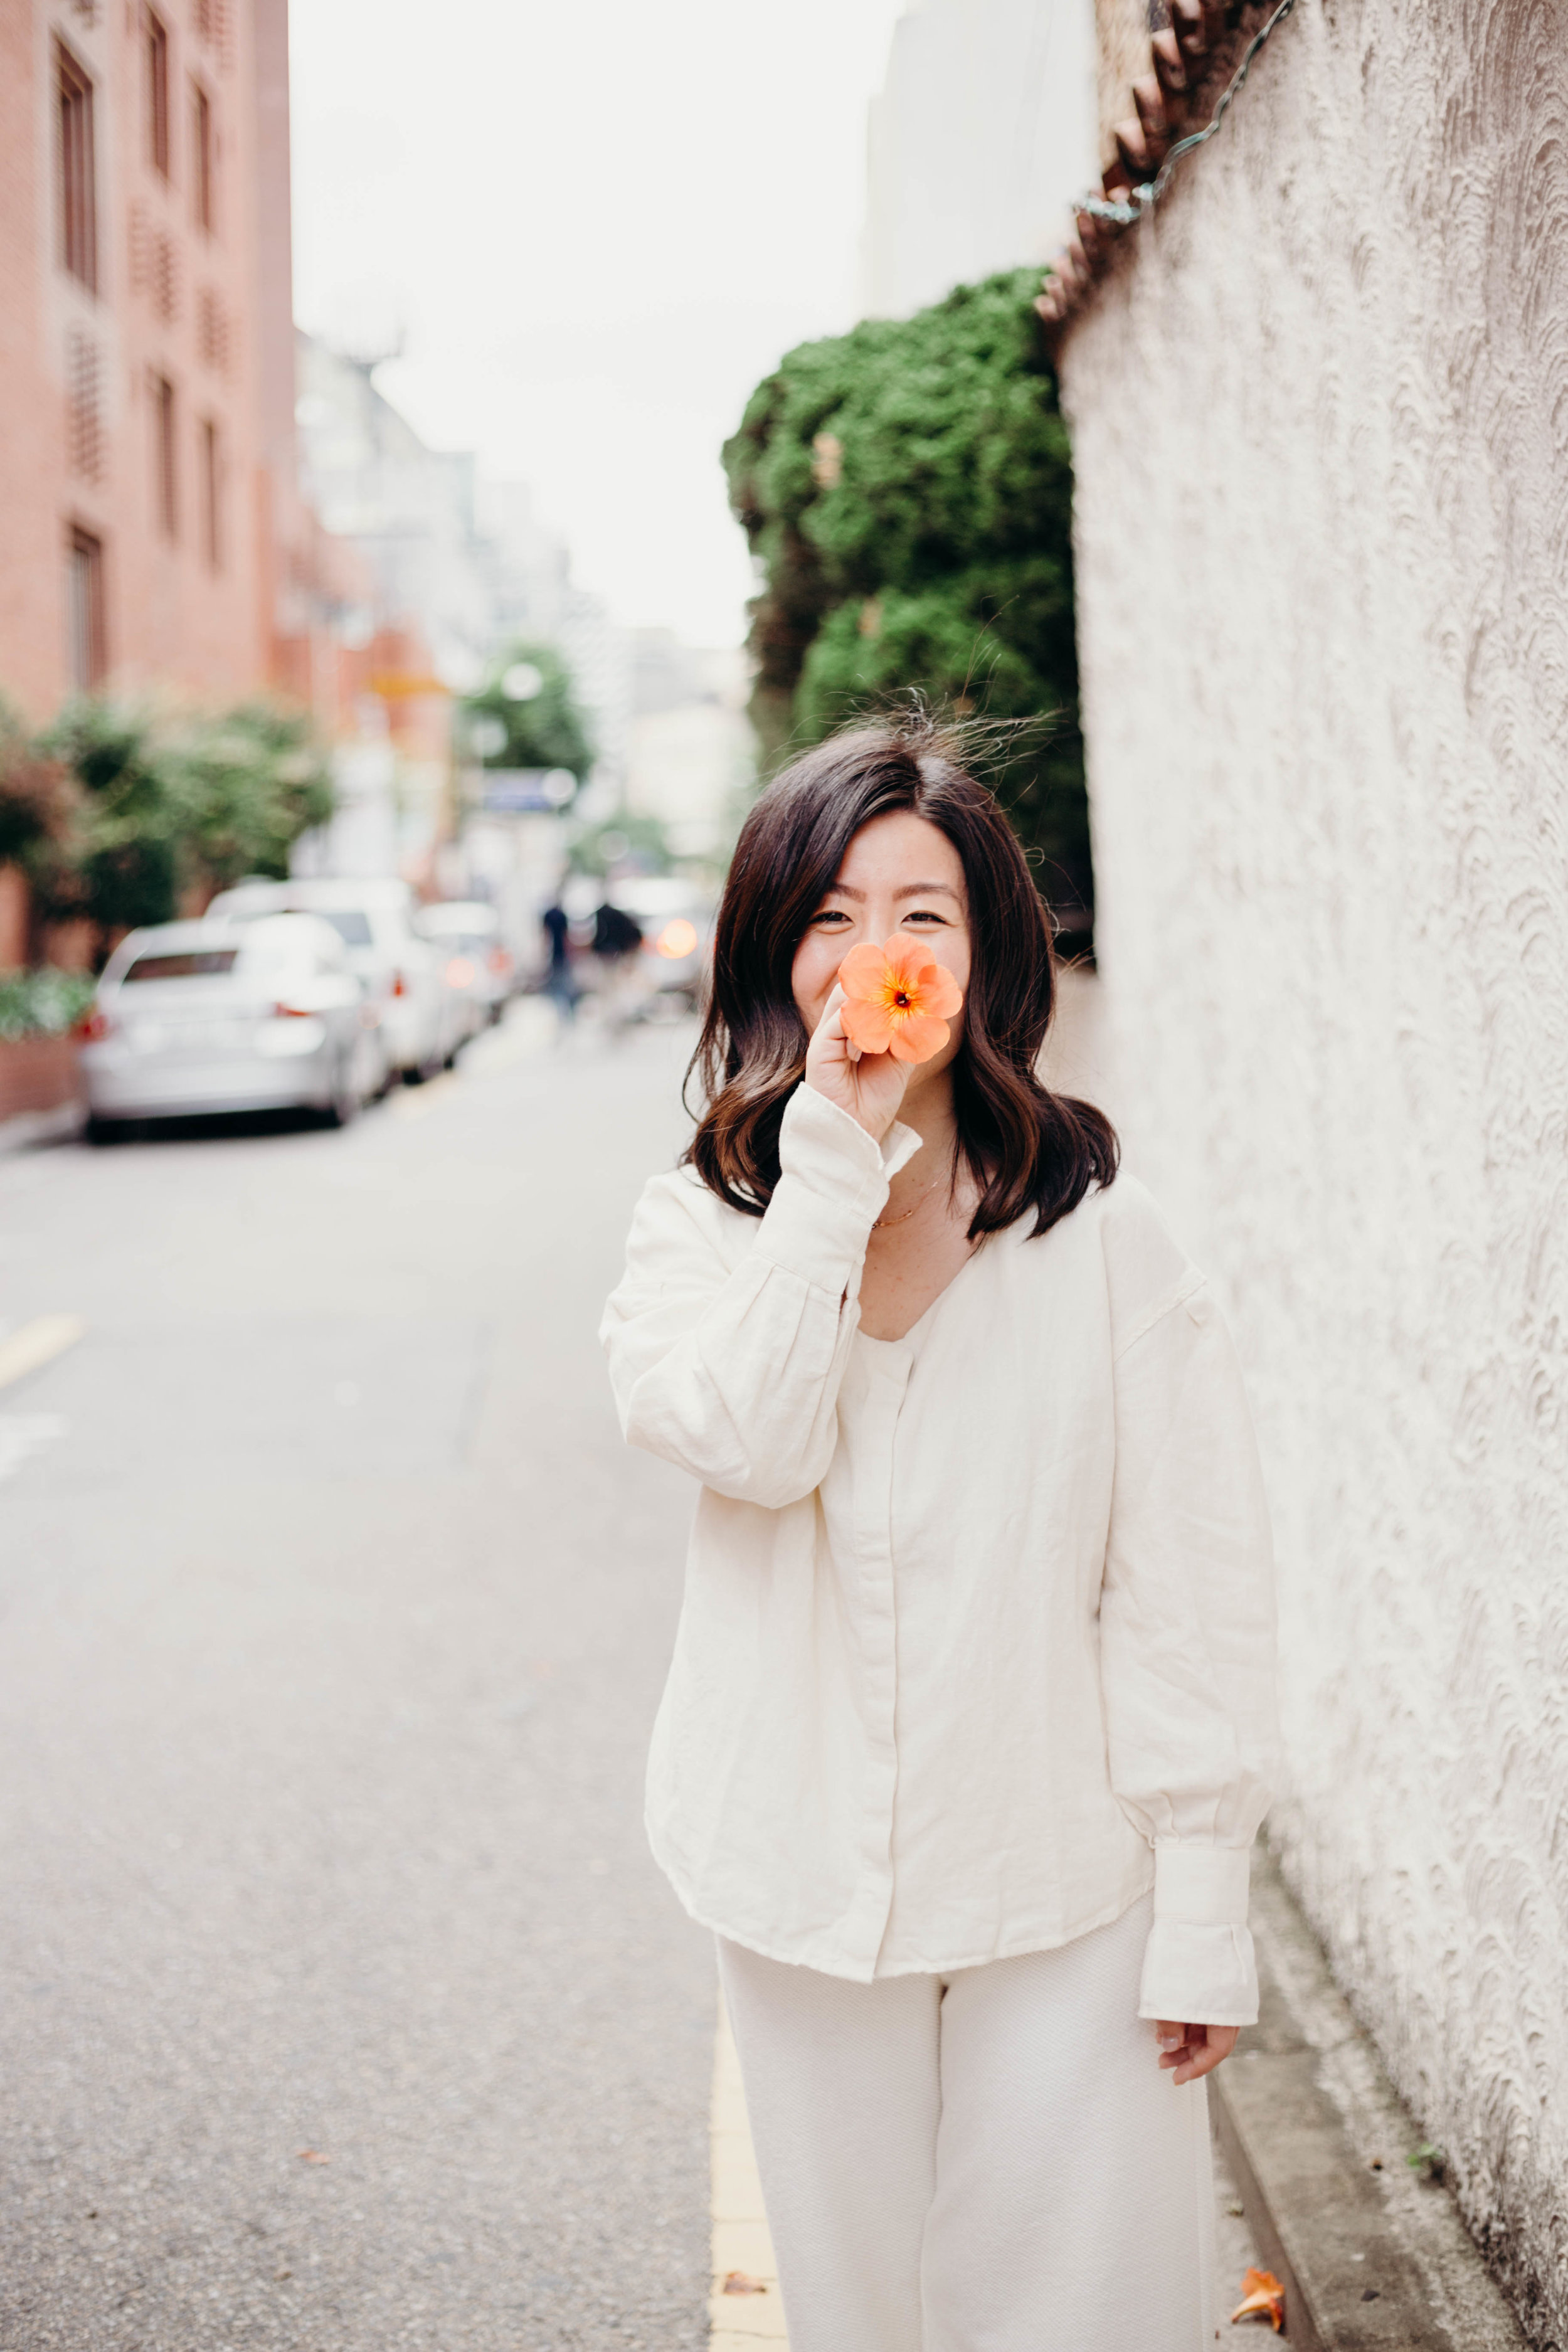 The Most Worn Item in My Wardrobe   On the Street Where We Live ( aretherelilactrees.com )  MANGO, neutrals, summer style, Seoul, orange flowers